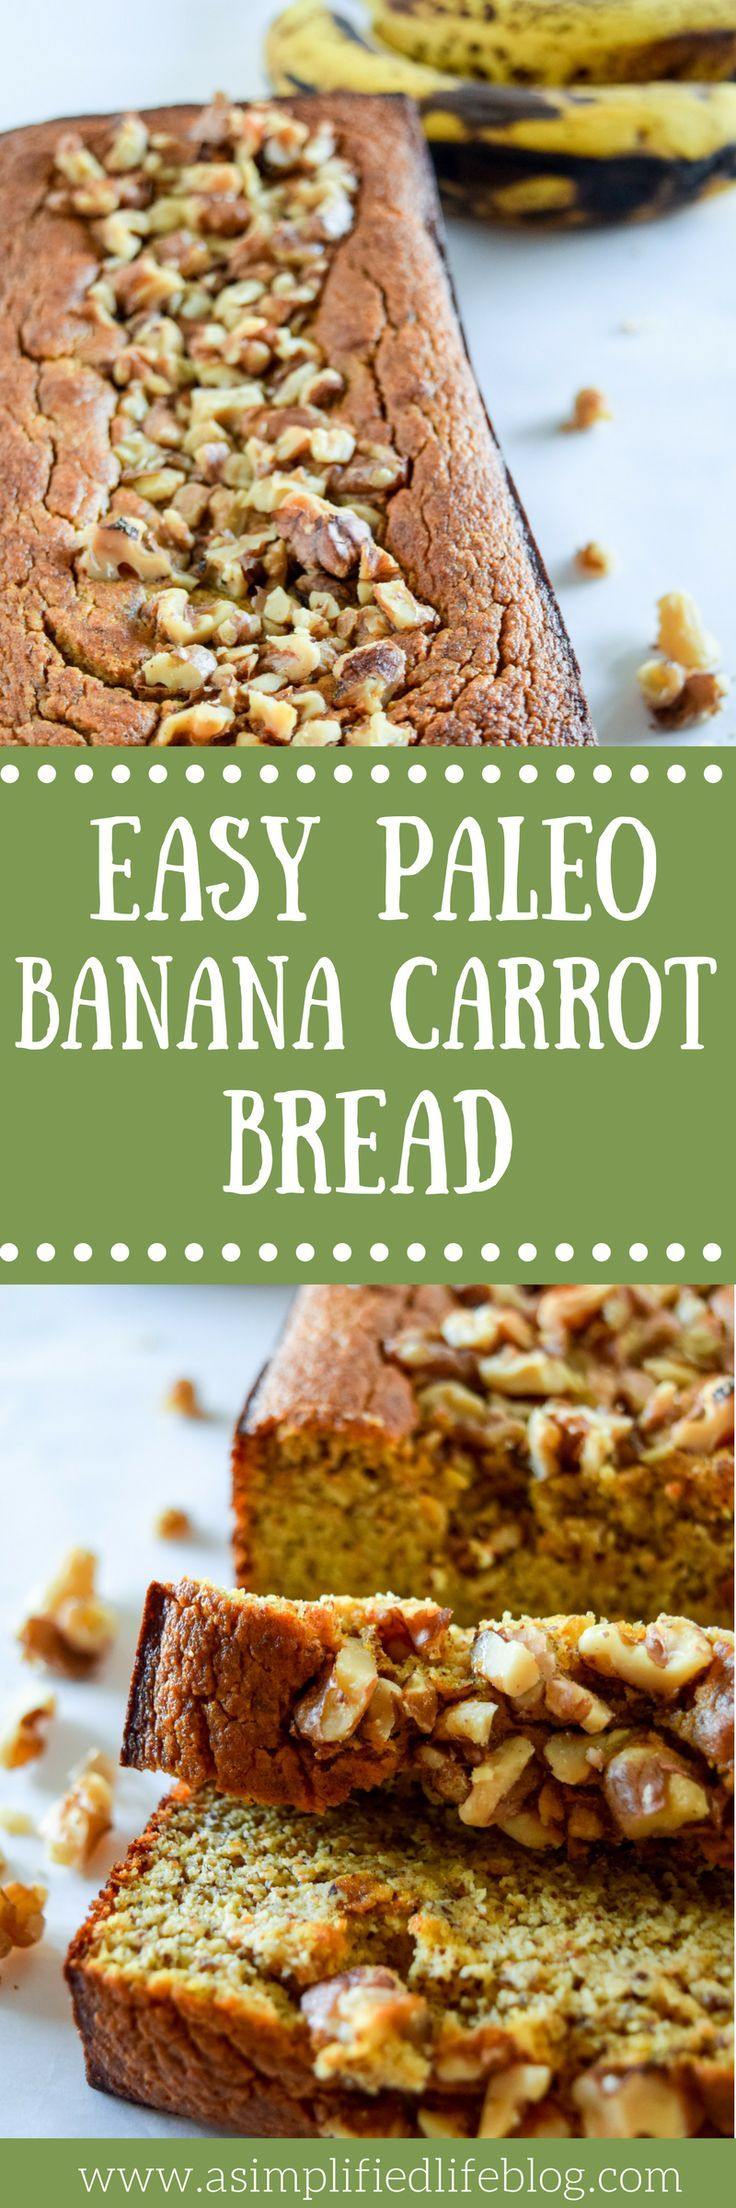 paleo banana carrot bread |  did it with chia seeds to make it vegan .. added some ginger and did coconut instead of walnuts